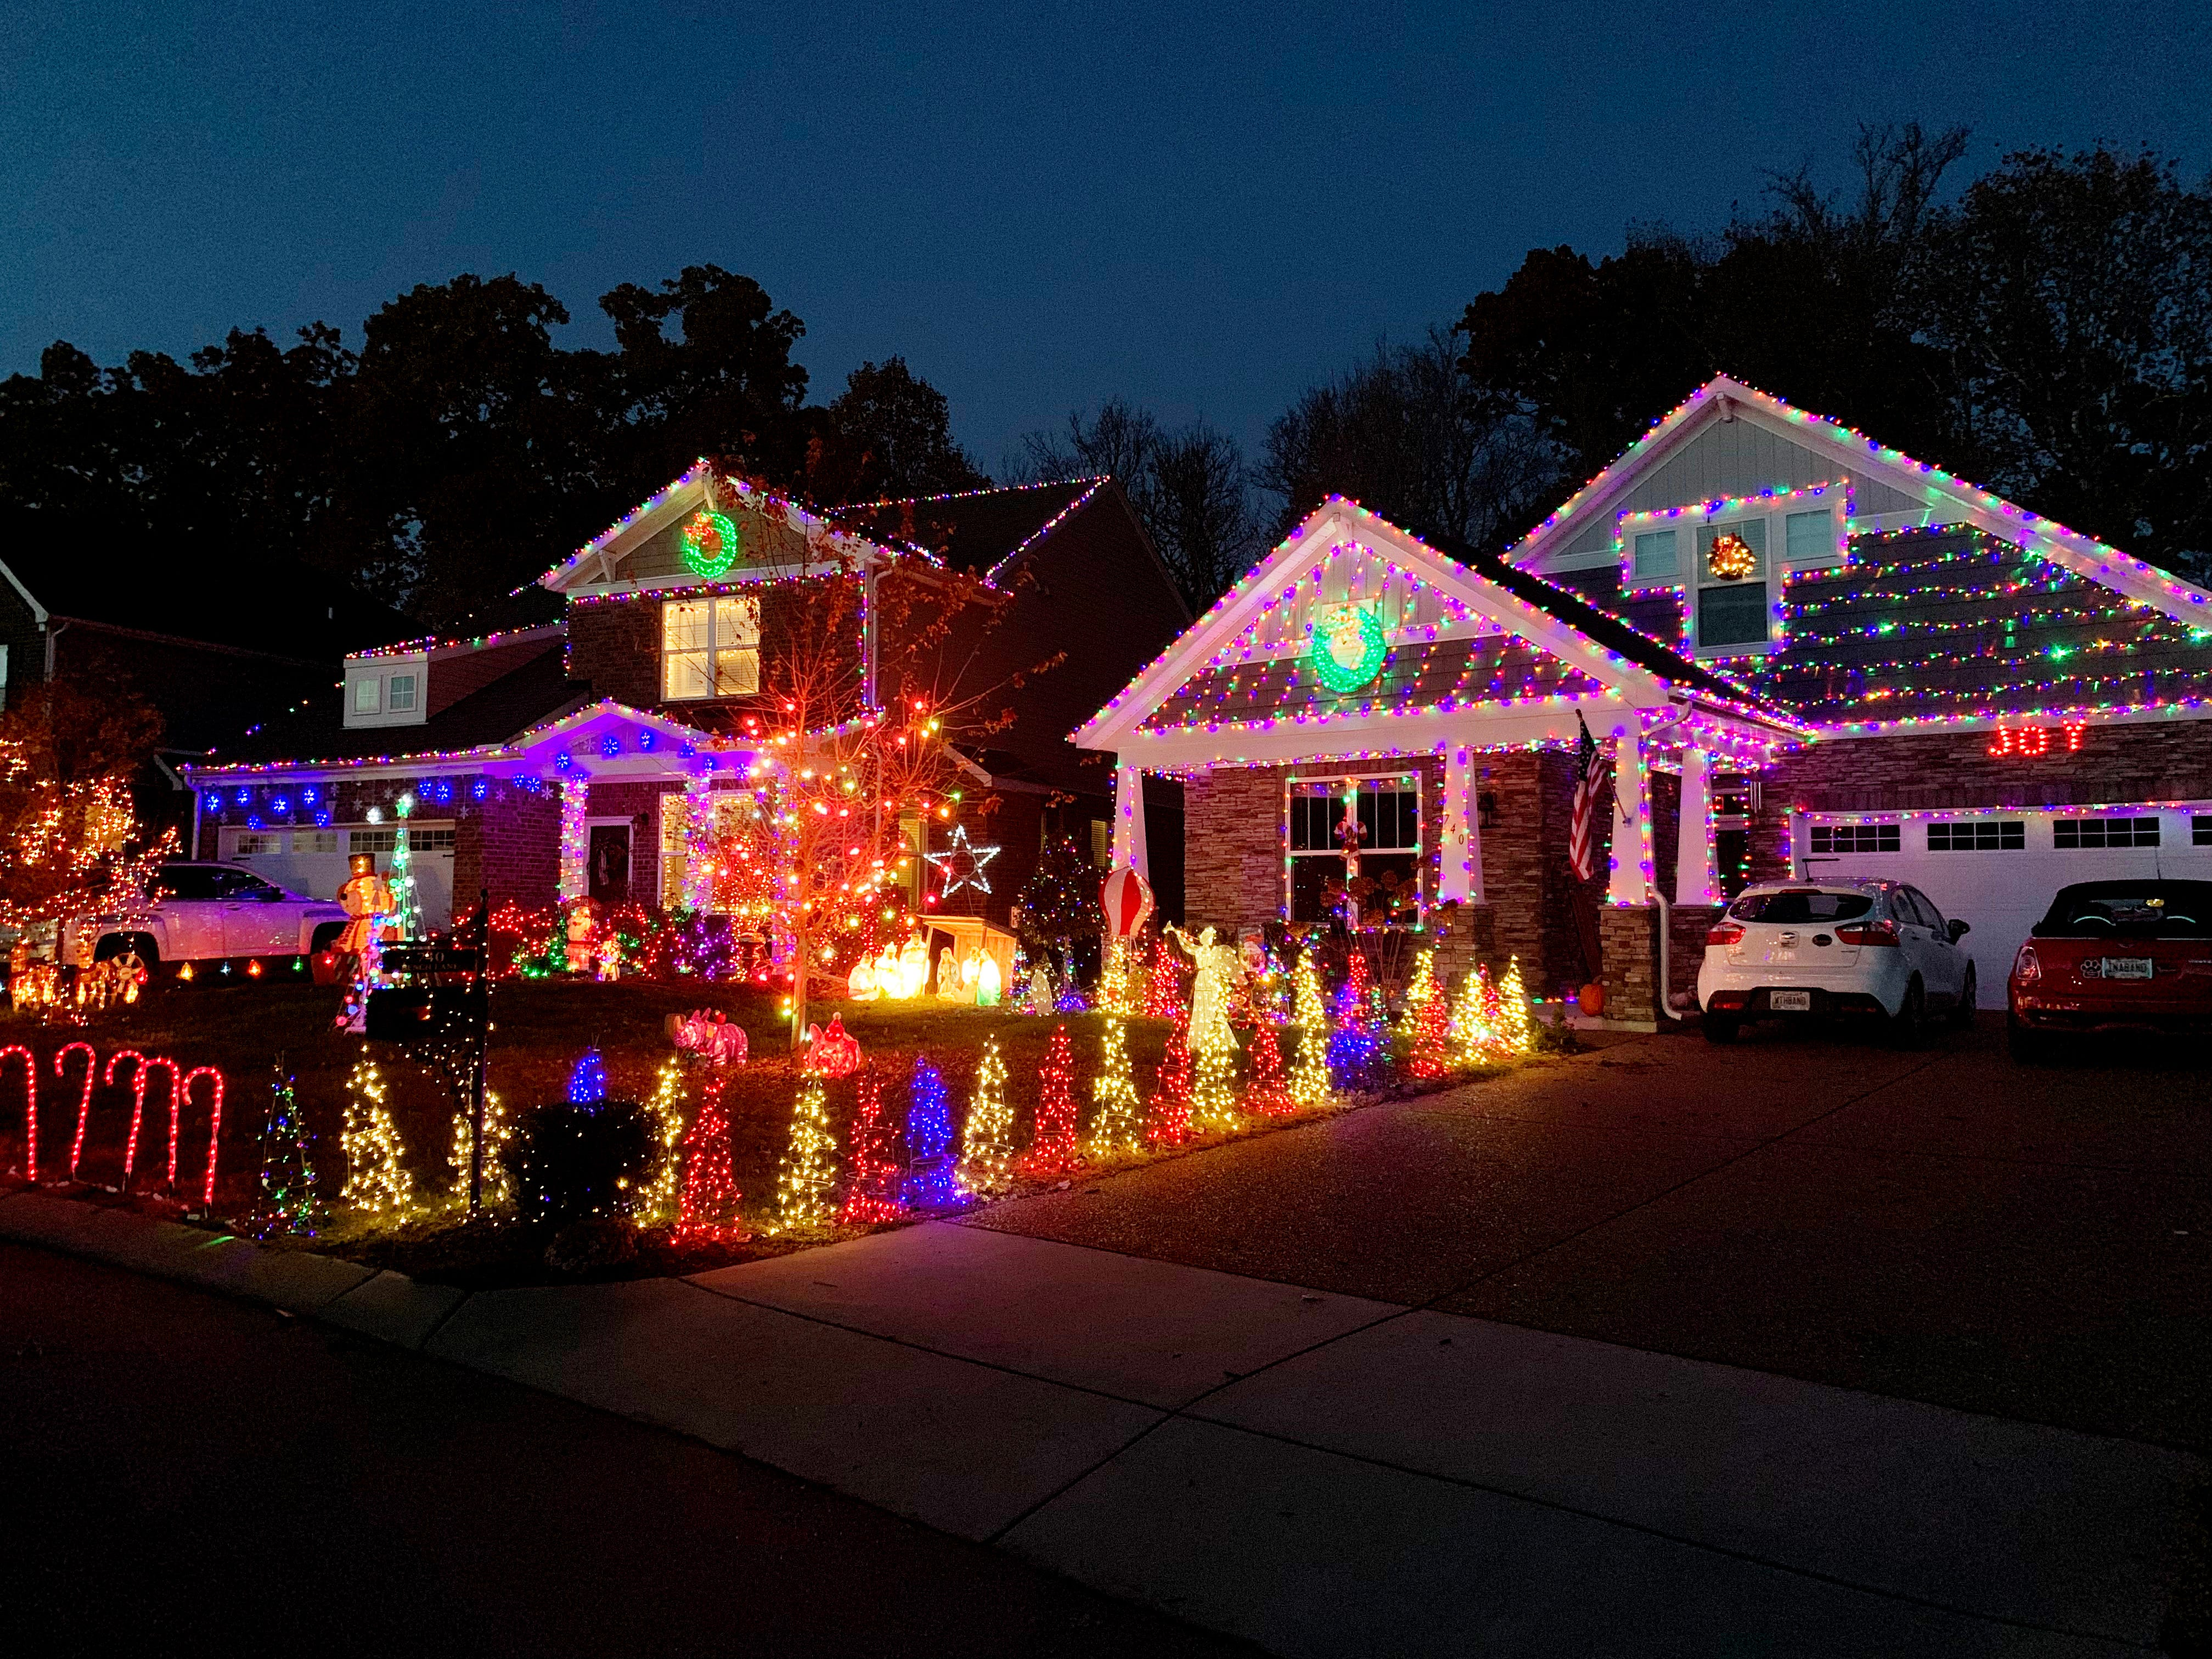 The home of Steve Braun and his neighbors on Bench Lane in Mt. Juliet are decorated with Christmas lights.